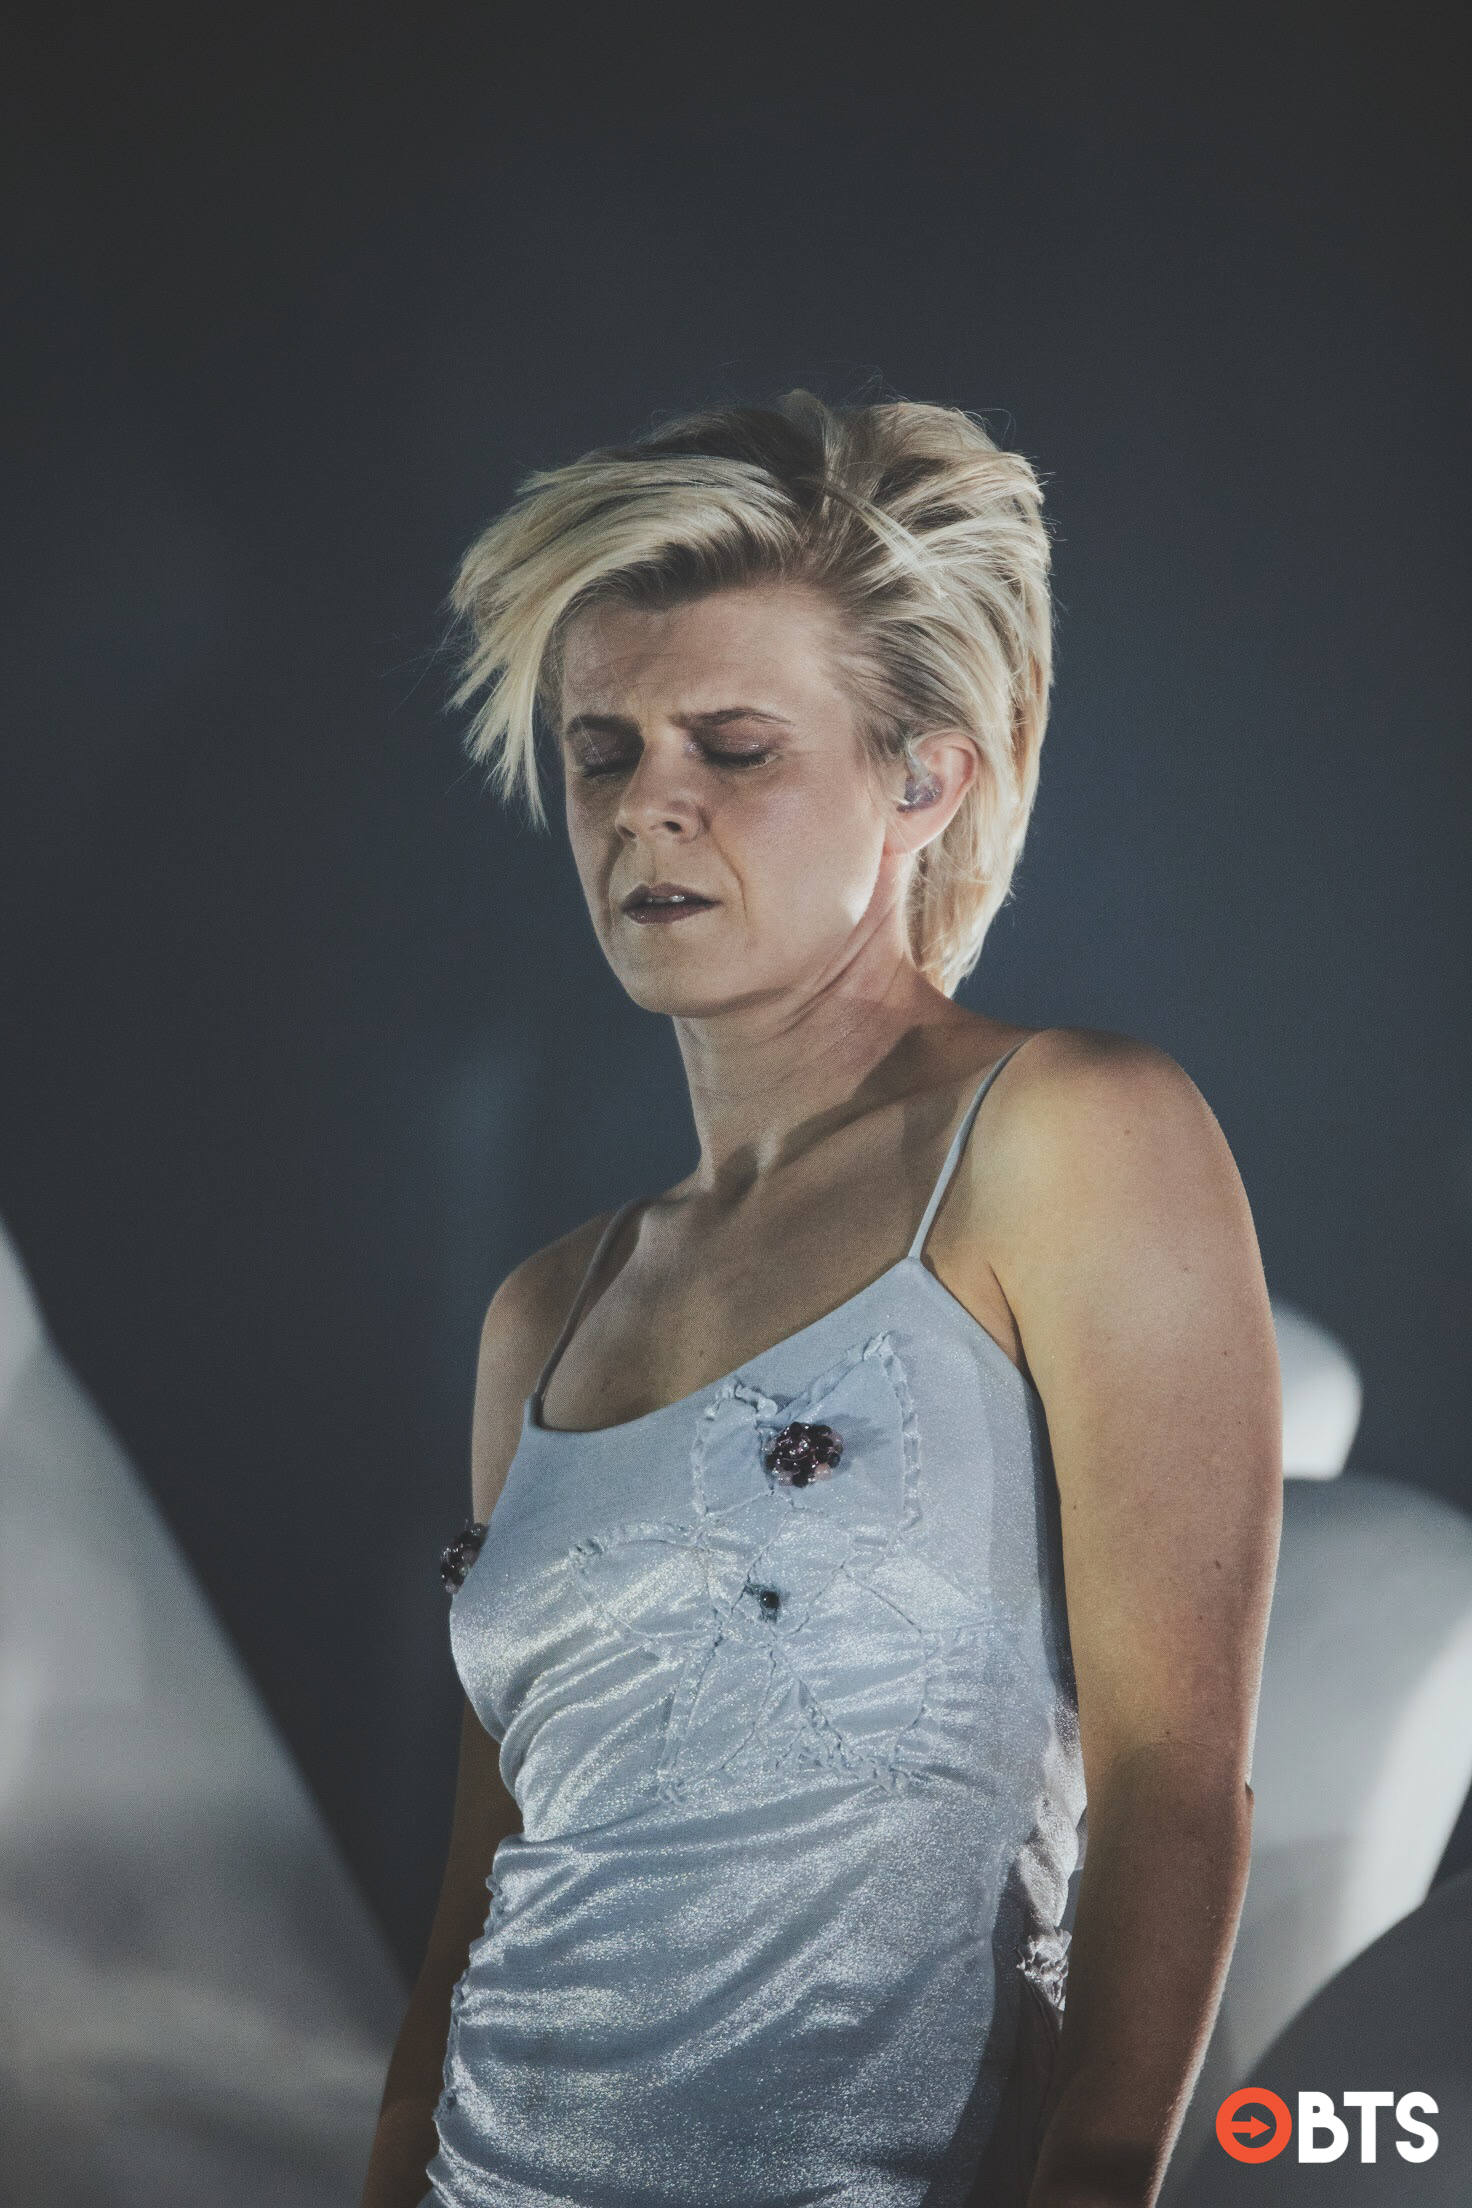 PHOTOS: Robyn - Seattle, WA - 3/1/2019 - Beyond The Stage ...Dr Robyn Randall